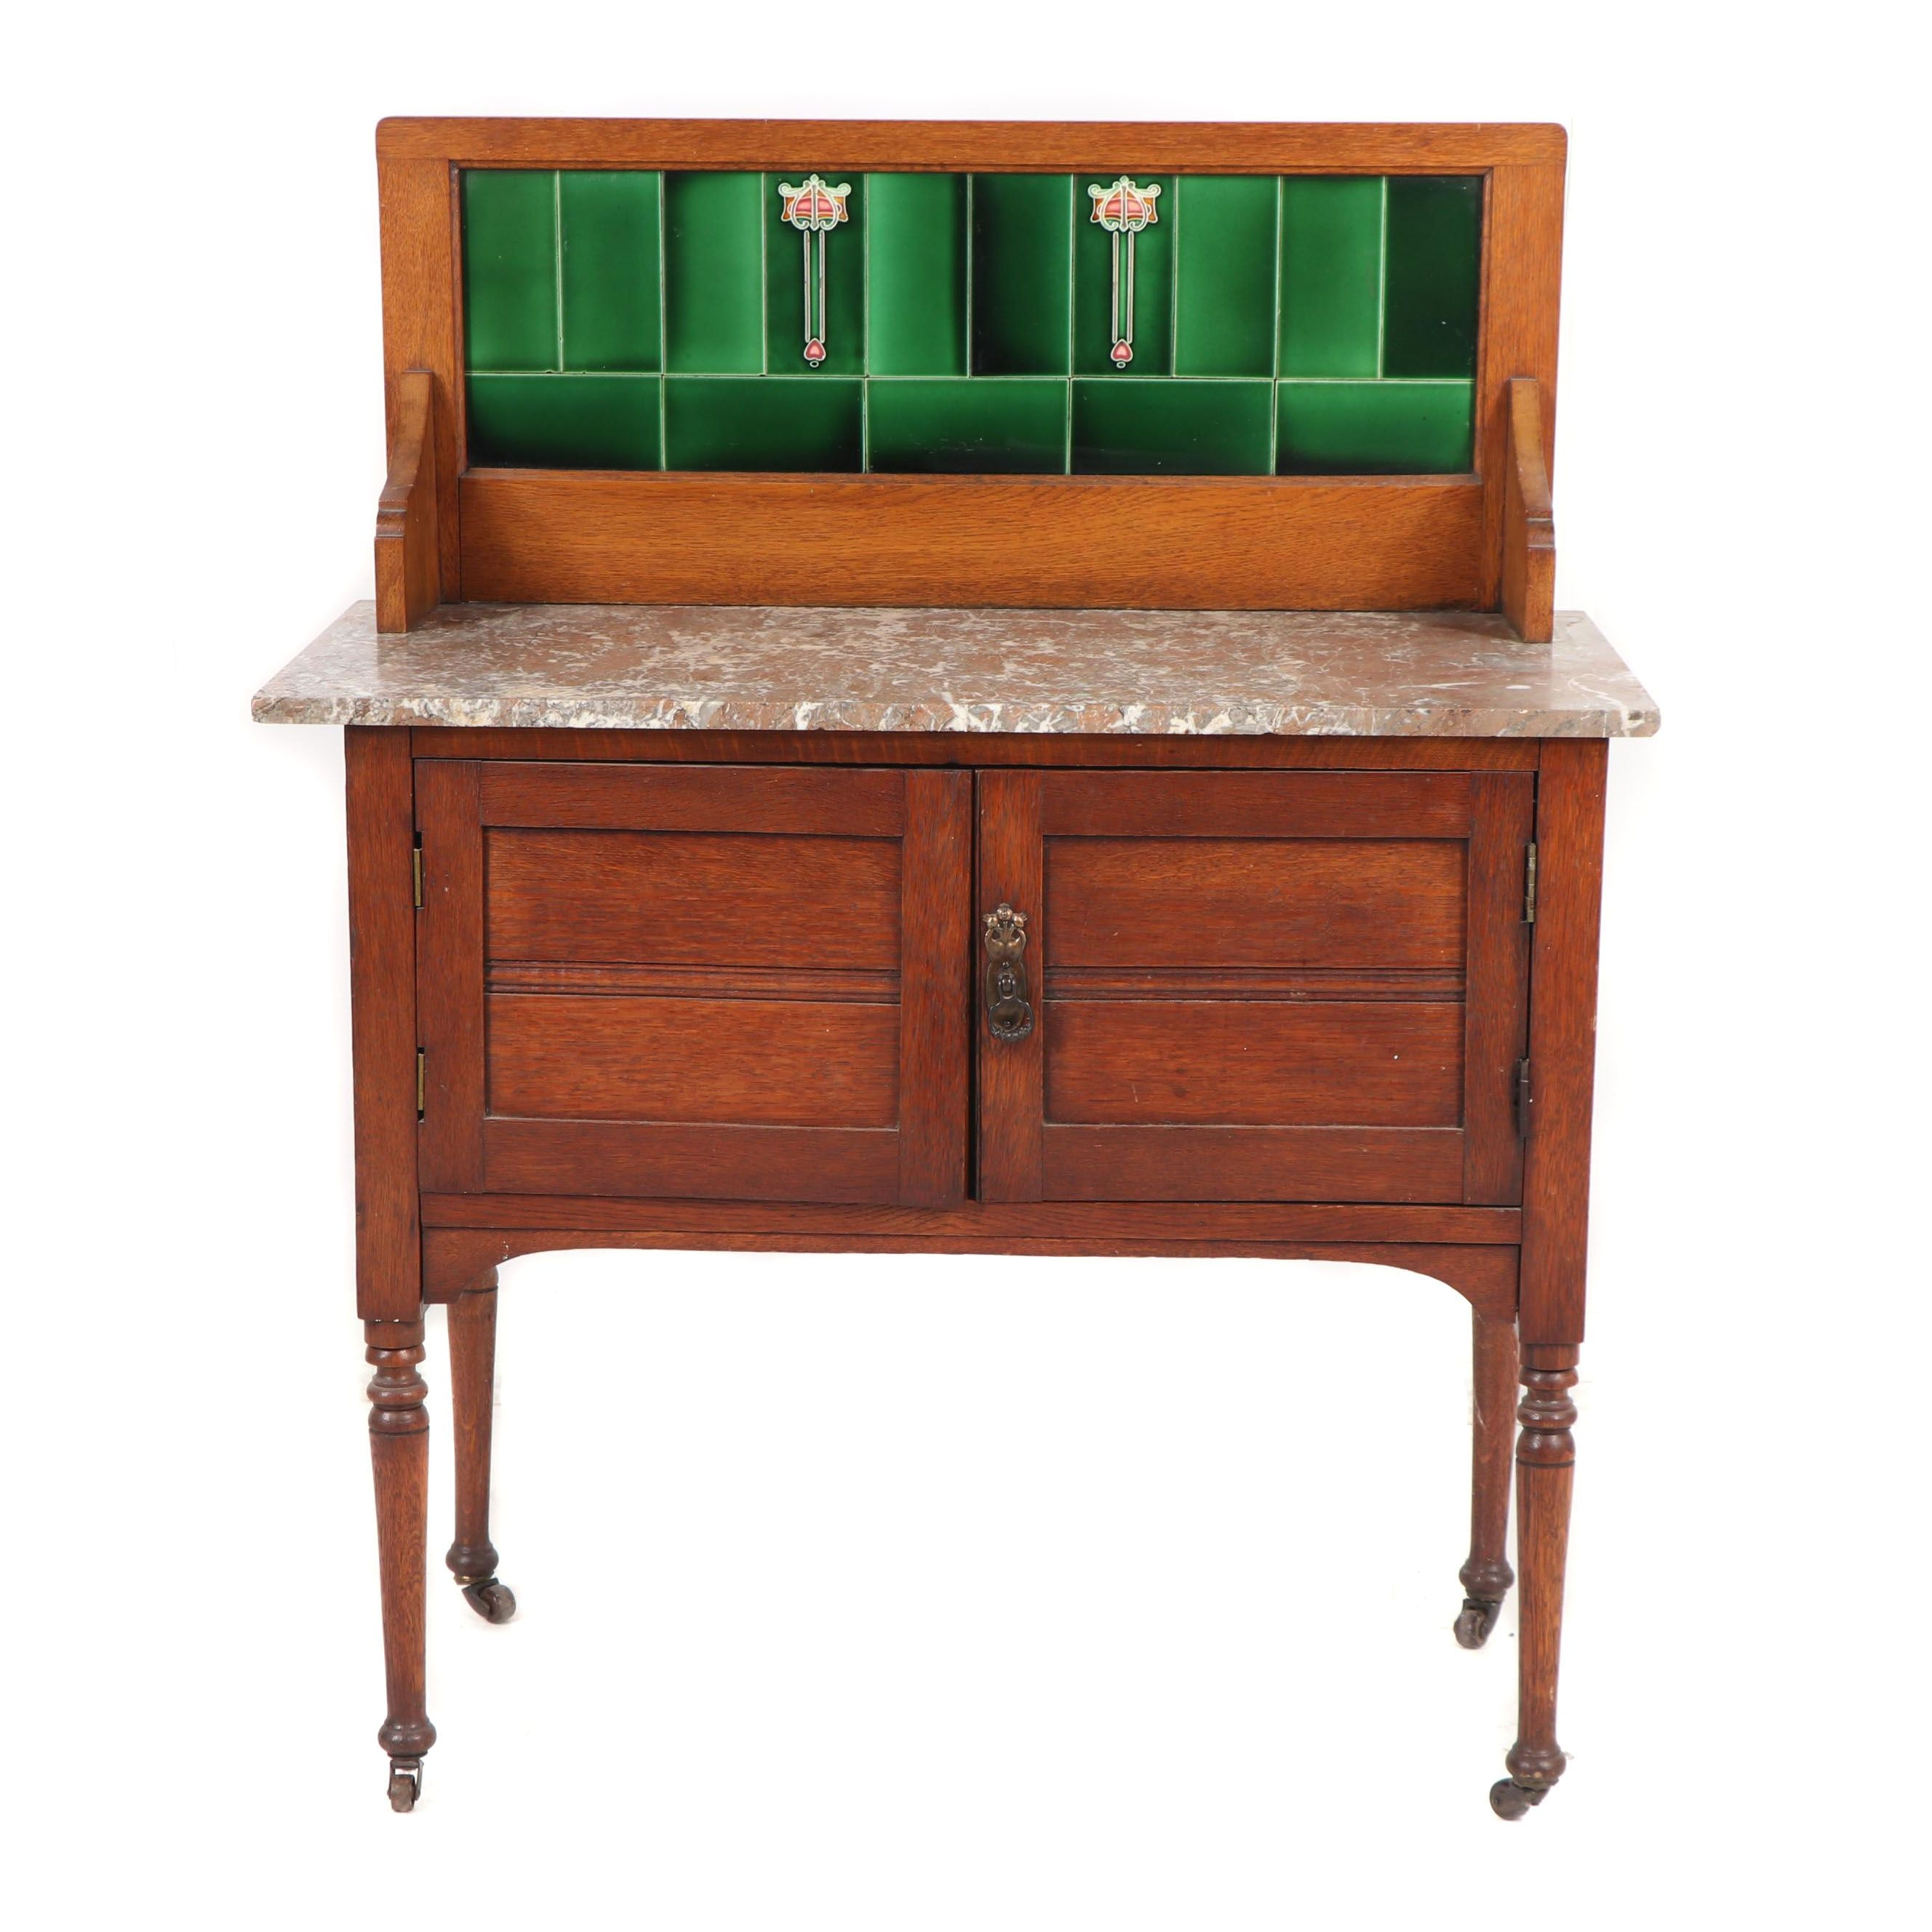 Late Victorian Oak Wash Stand with Tiled Backsplash, 19th/20th Century